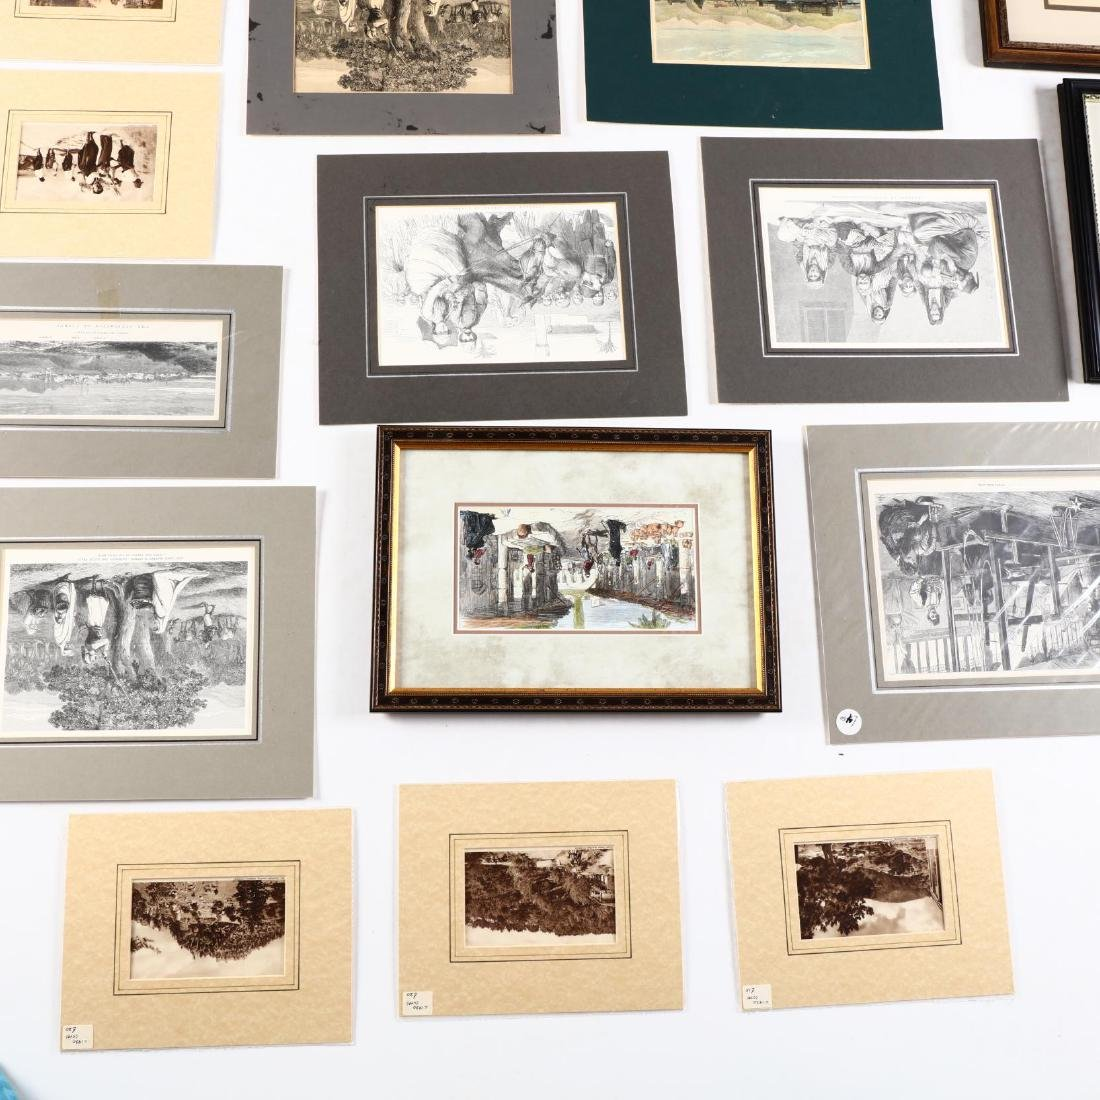 Group of Engravings and Photographs Documenting Old - 4